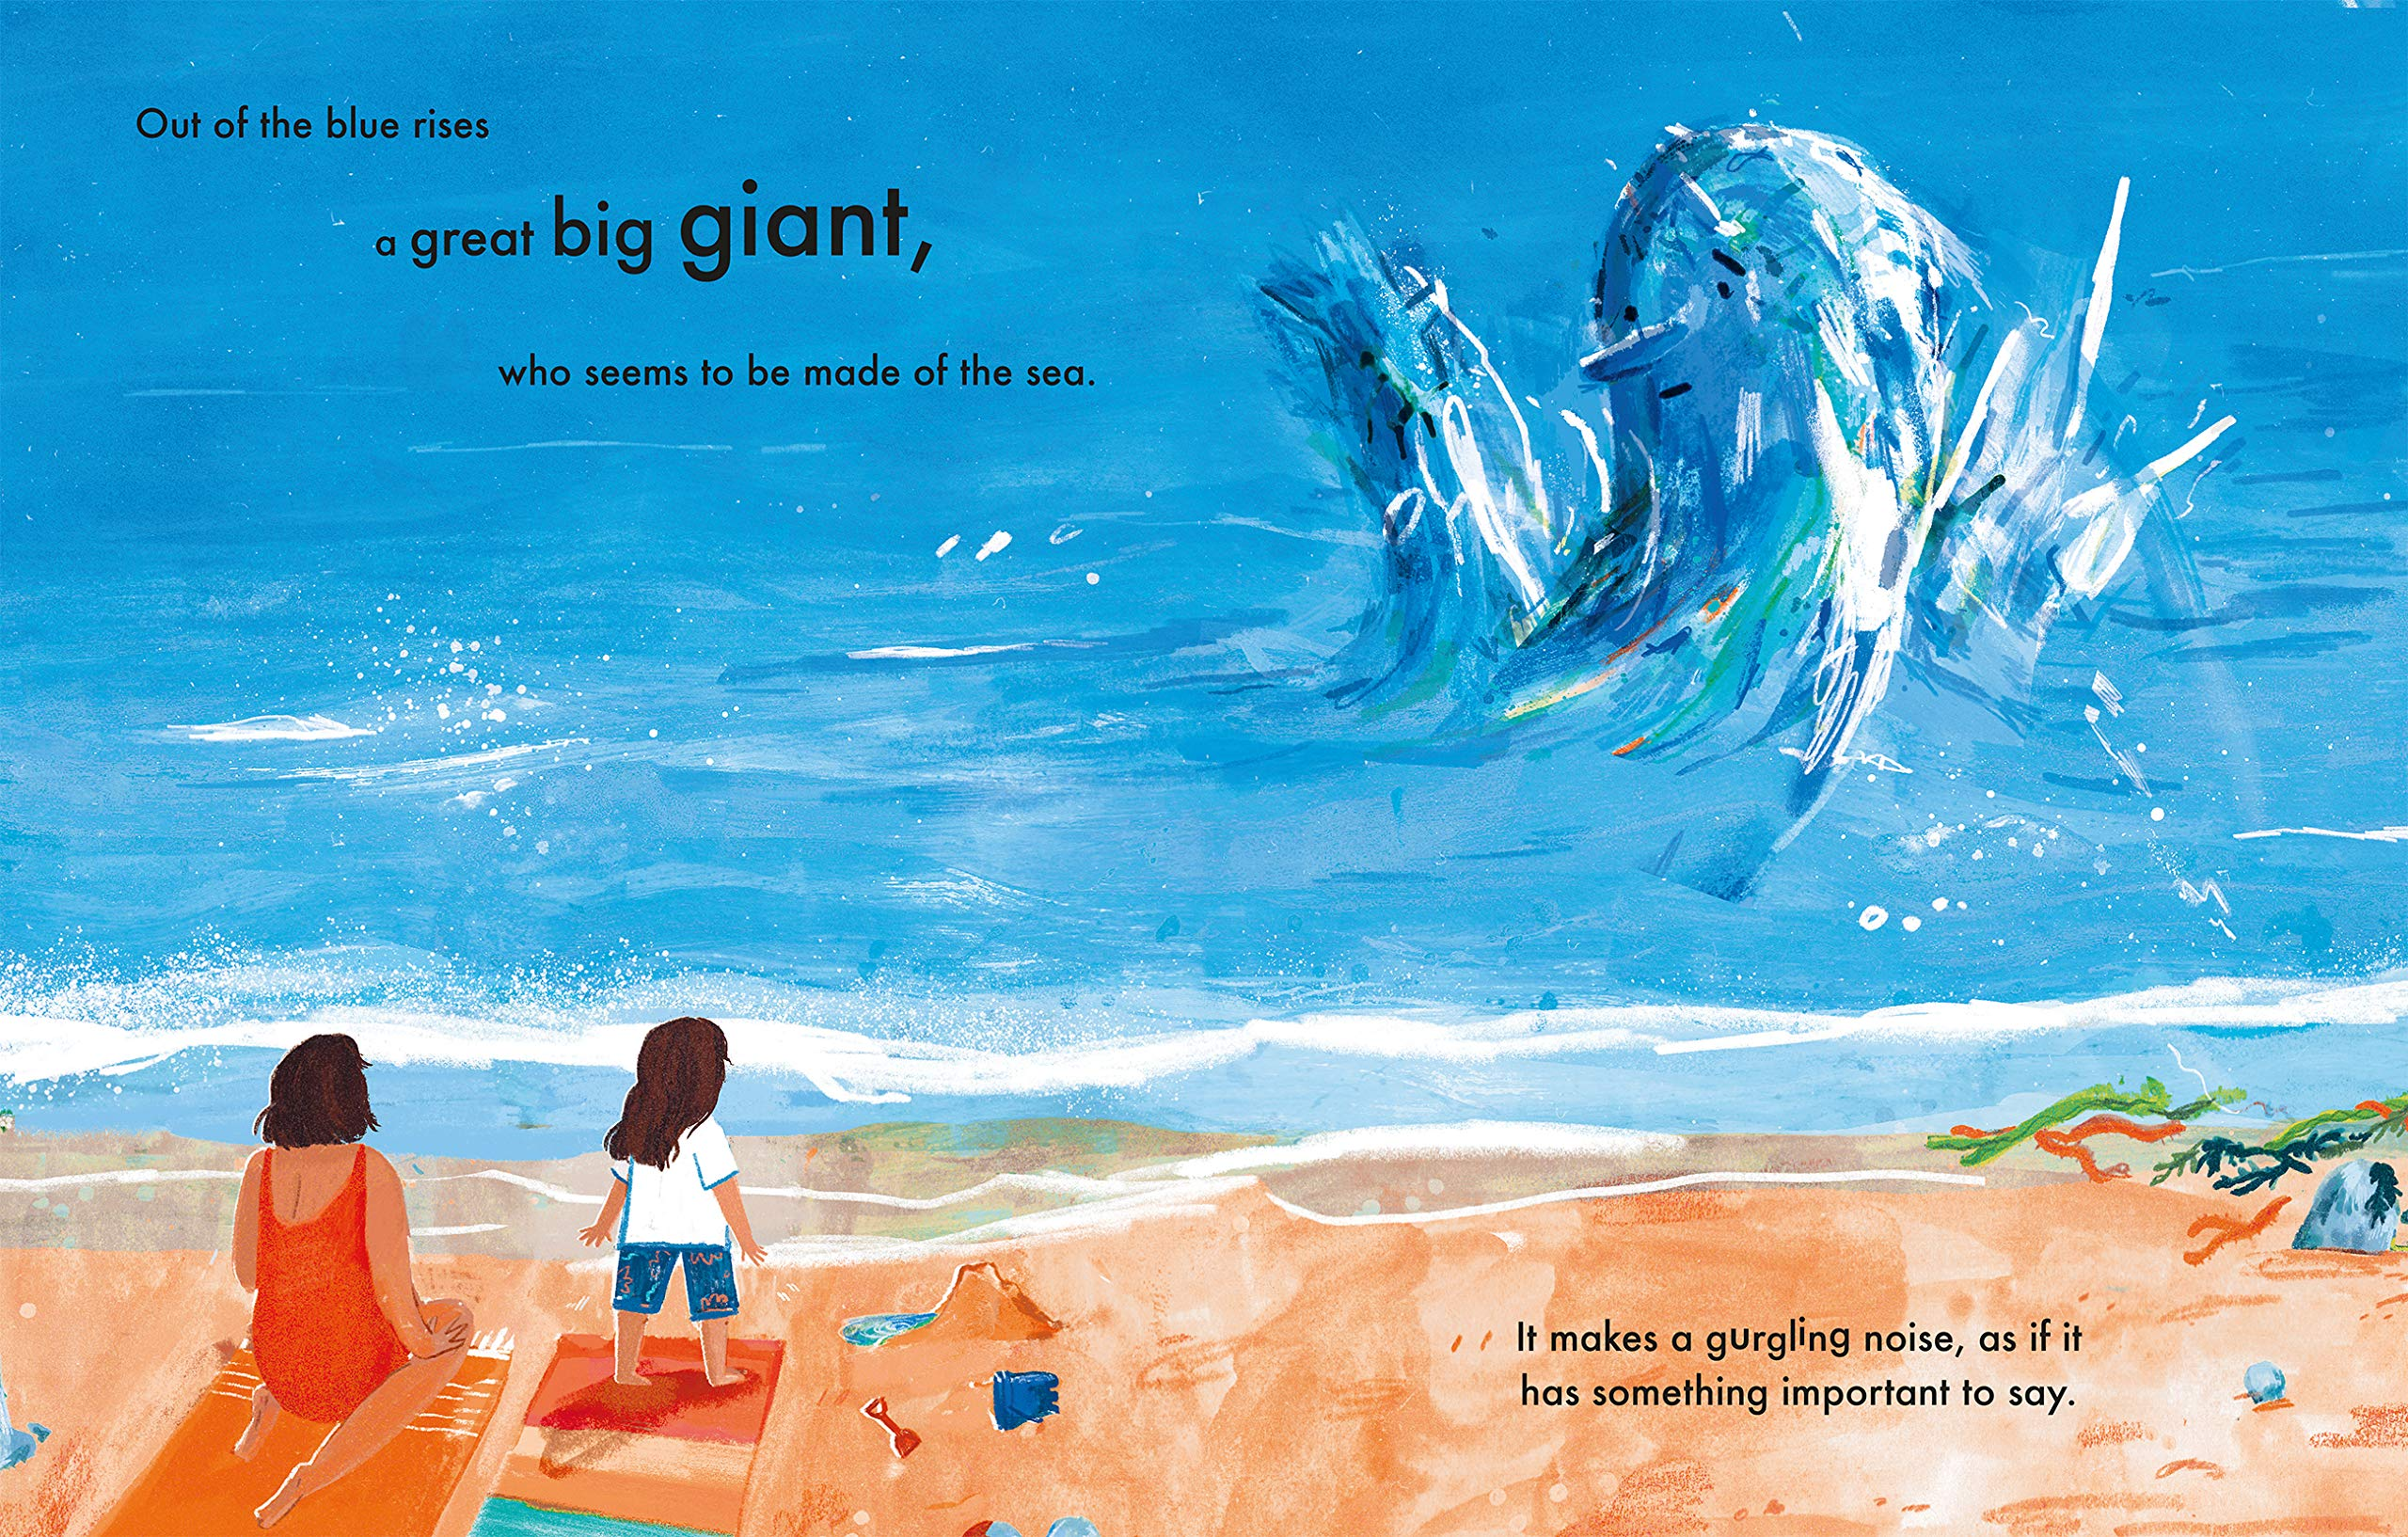 Katie Cottle: The Blue Giant